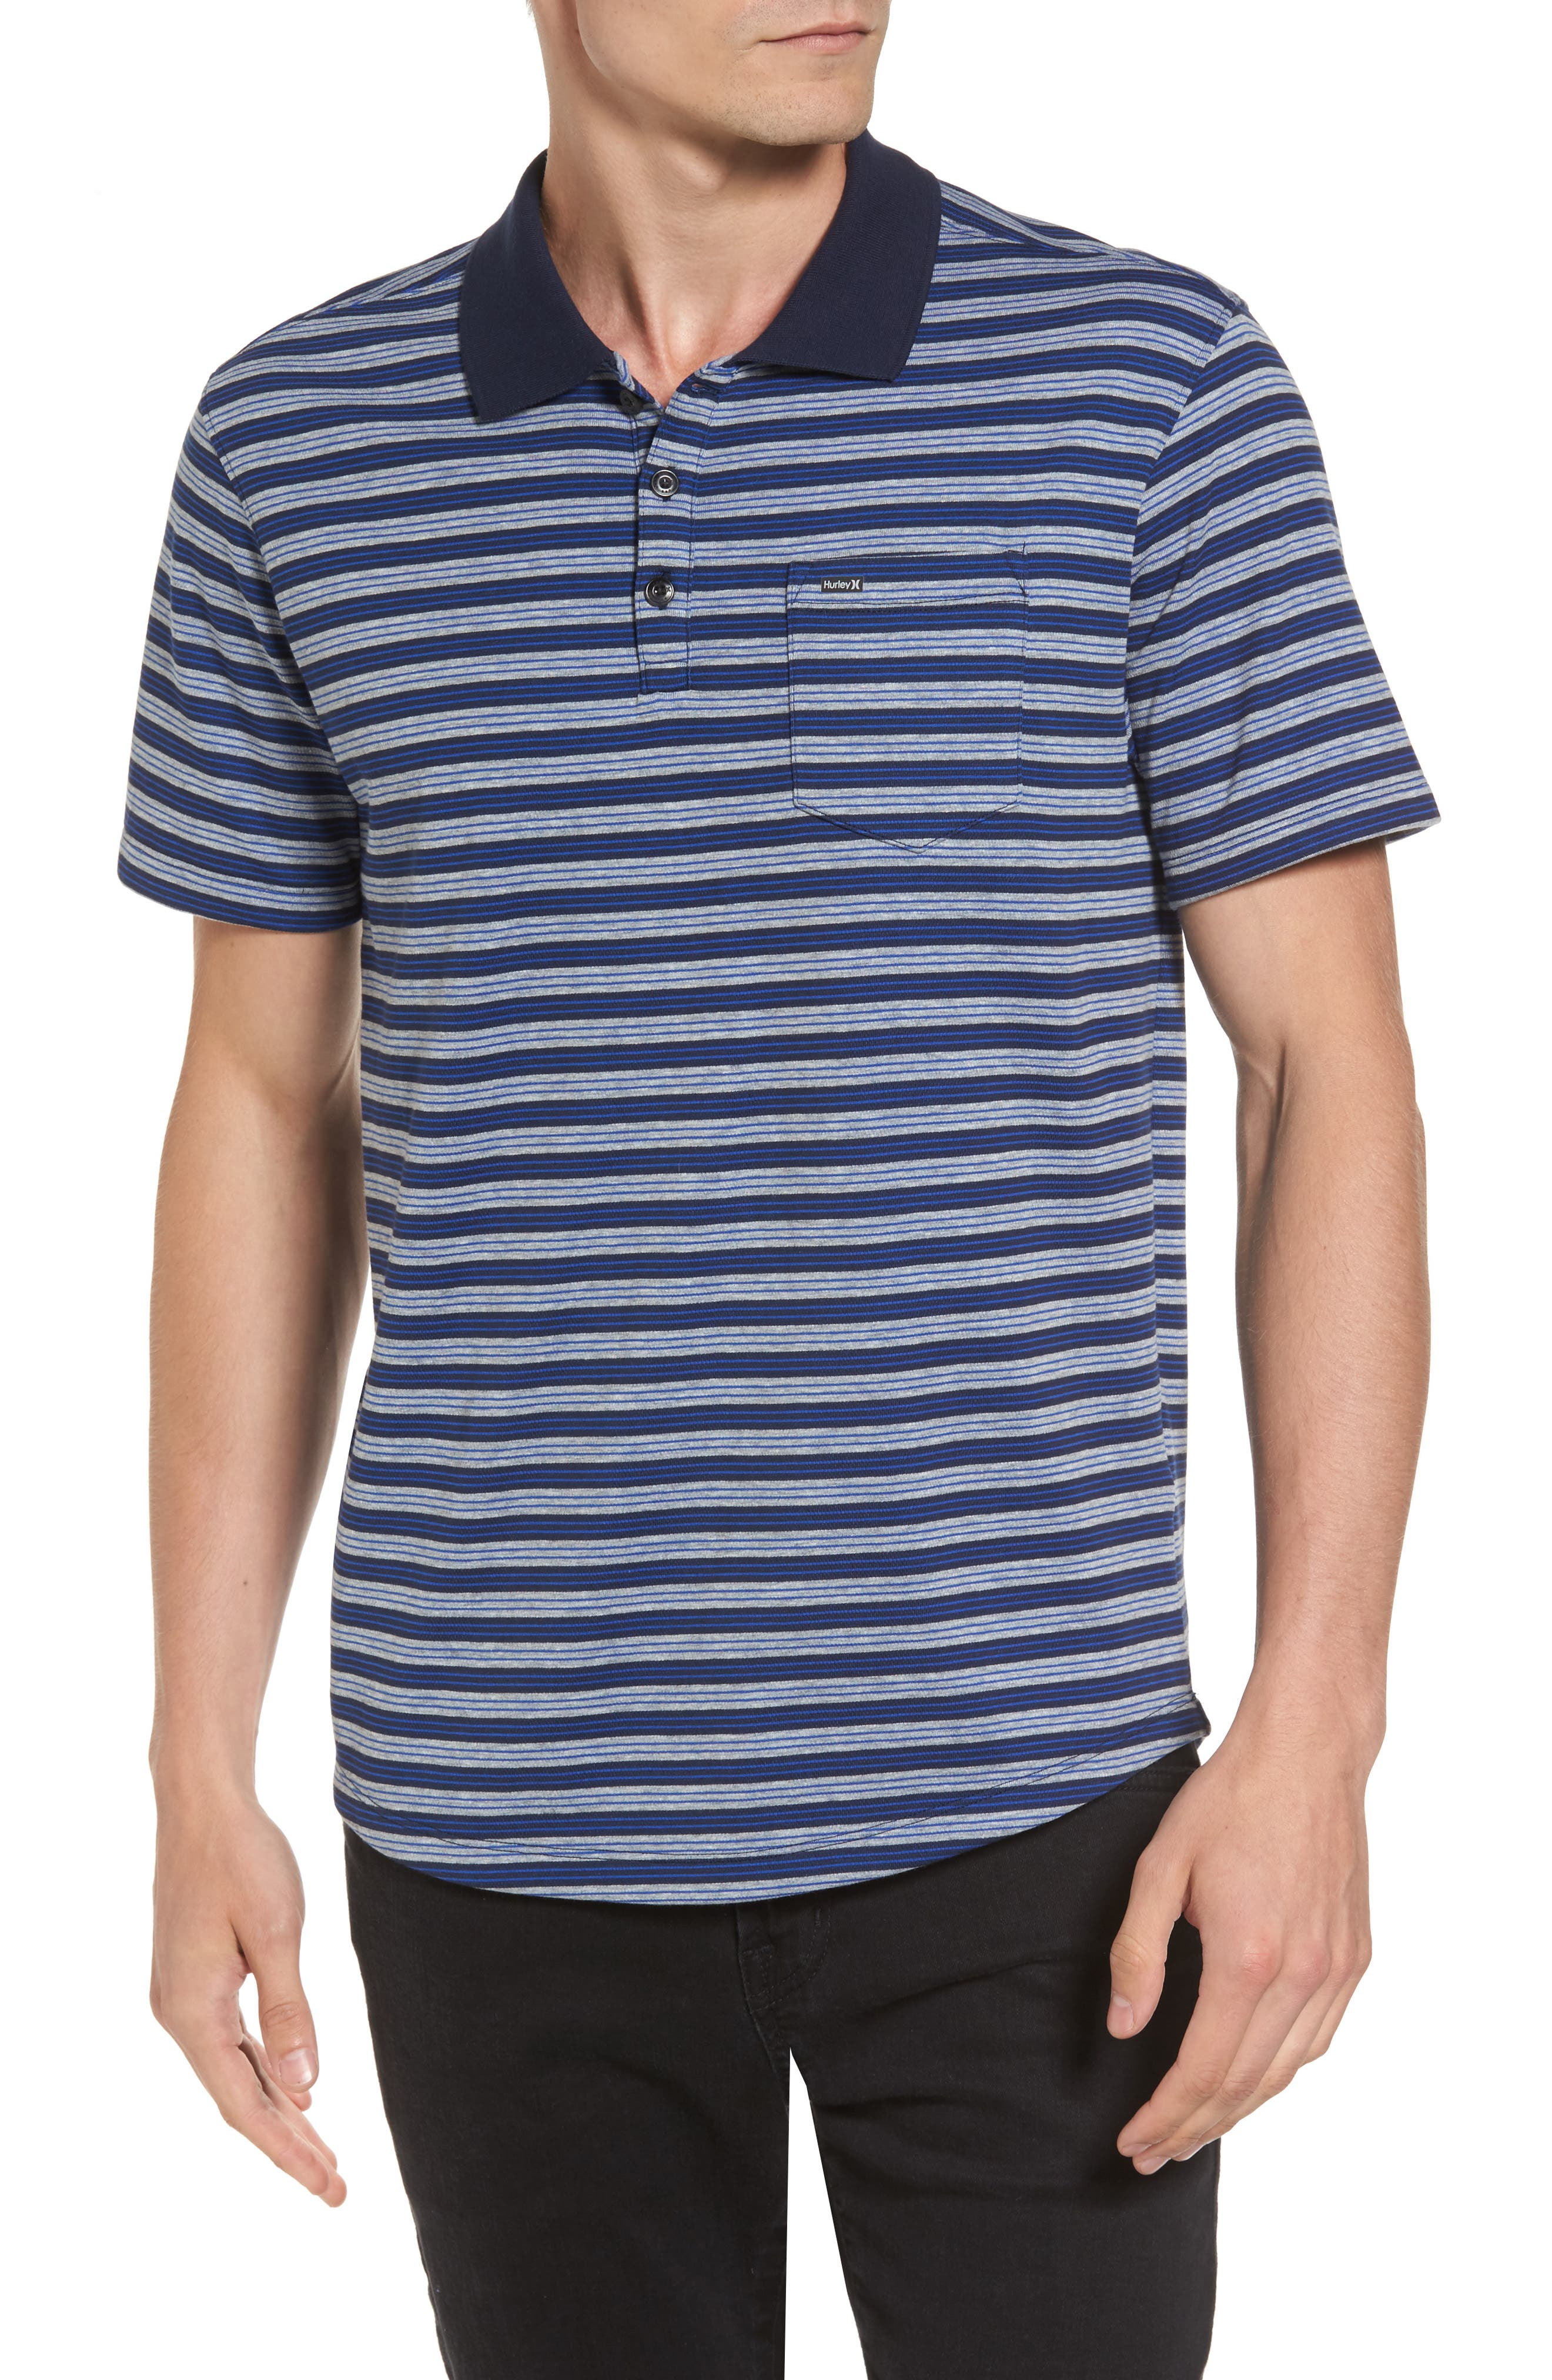 Main Image - Hurley Tower 5 Dri-FIT Polo